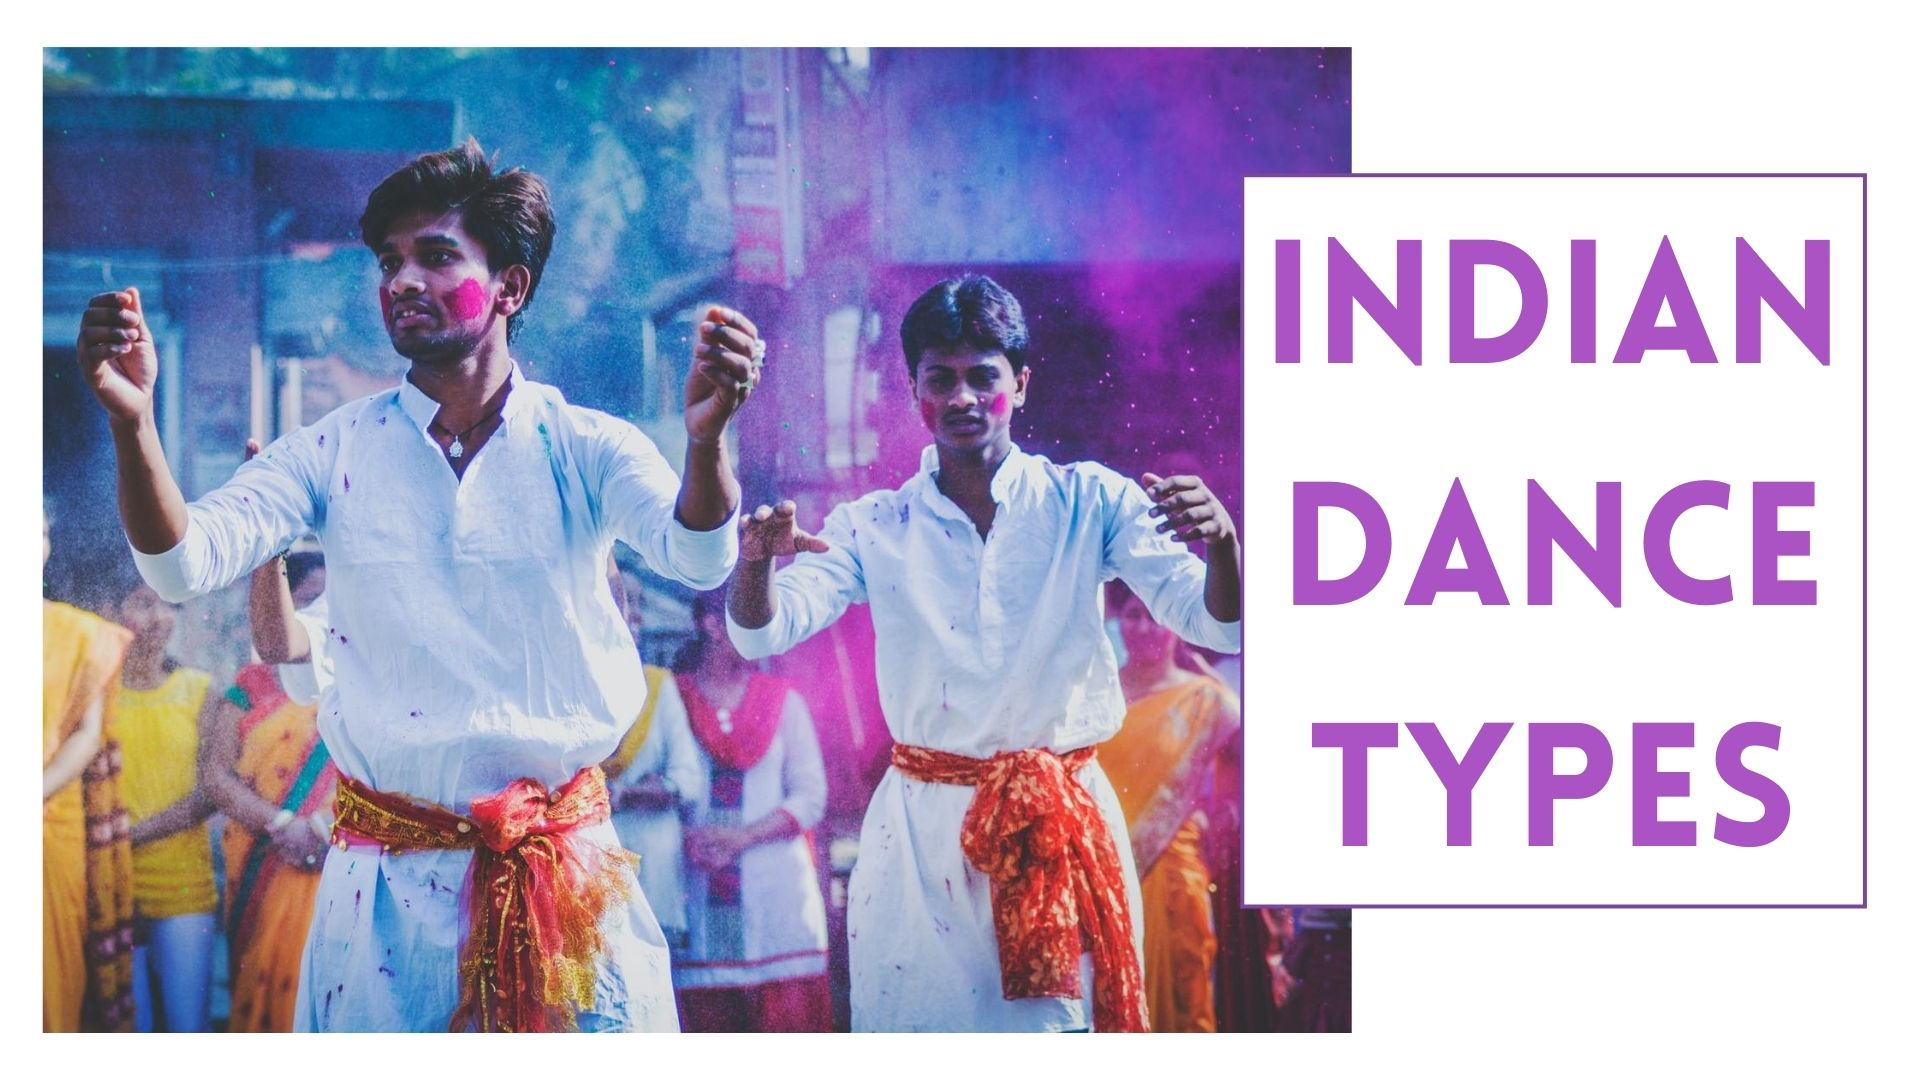 Indian Dance Types